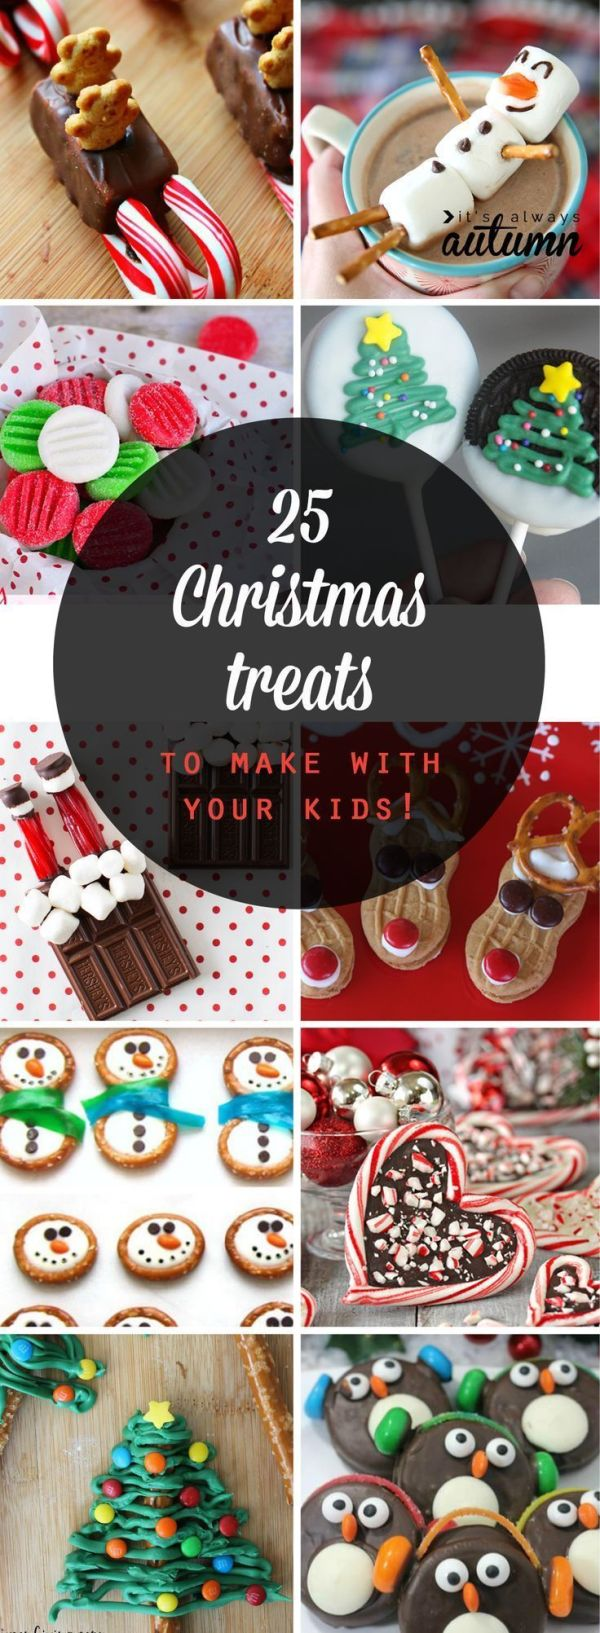 1000 images about Holiday Sweets on Pinterest Best